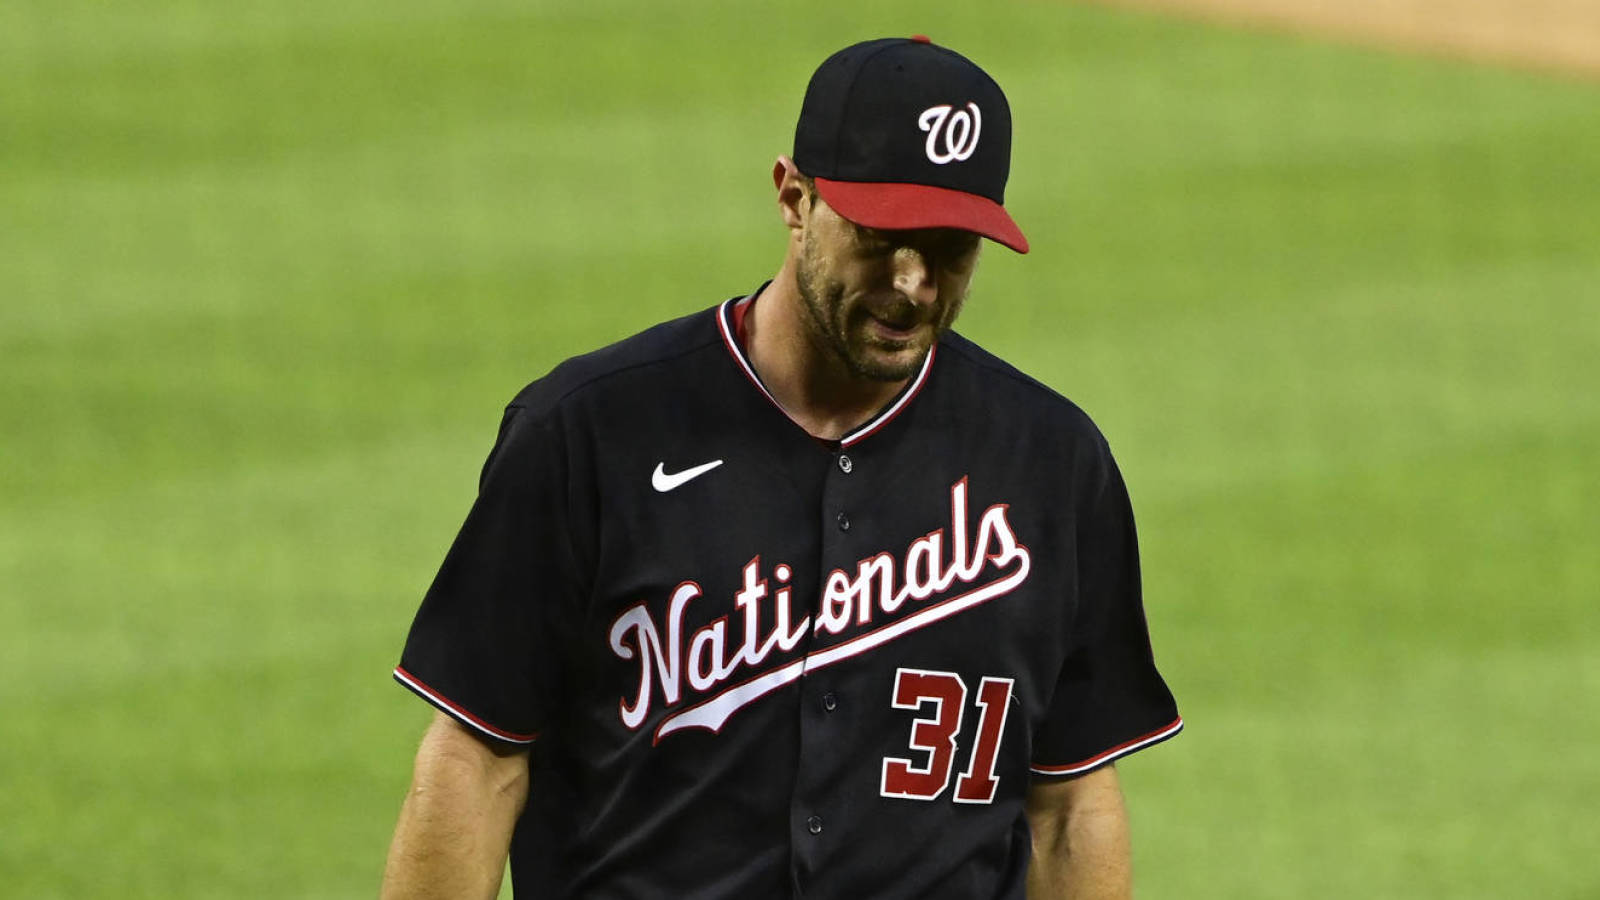 Max Scherzer leaves early due to injury